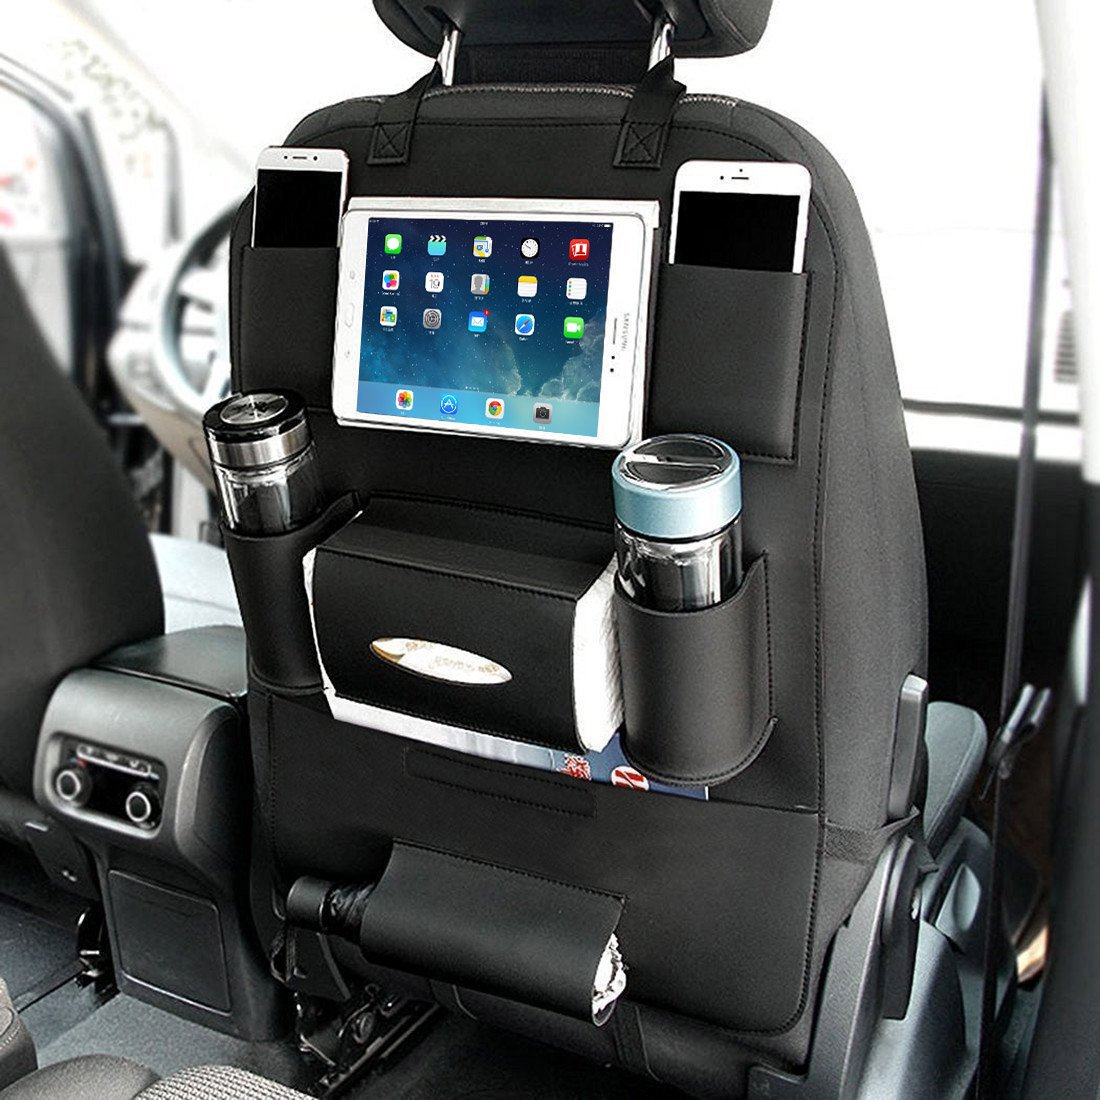 YOOSUN Kick Mats Car Organisers Auto Organizer Pockets Waterproof Seat Back Protectors for Kids with 10' iPad Holder With Tissue Box Auto Seat Covers for Car Travel Accessories-1 Pack